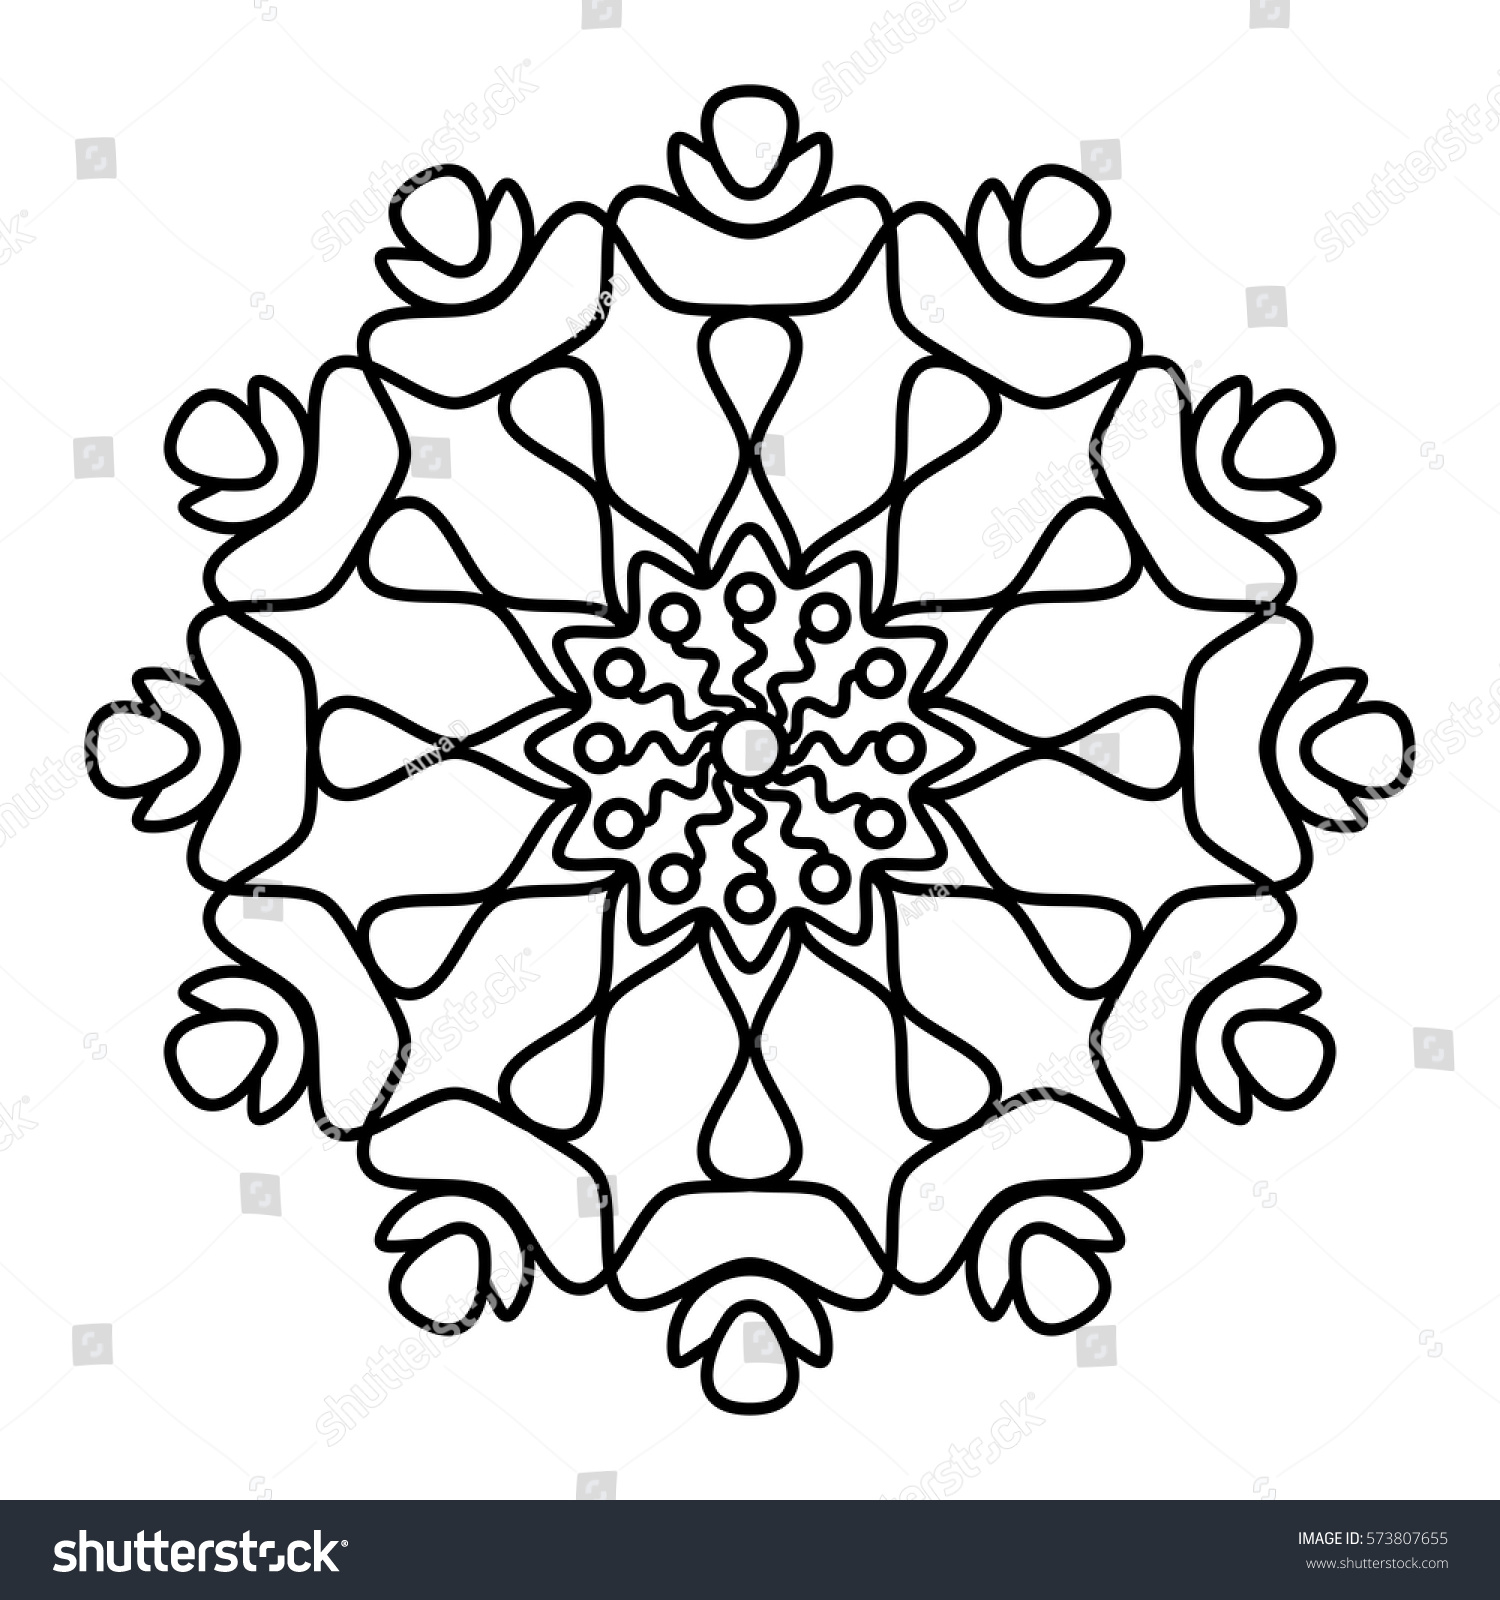 simple floral mandala pattern coloring book stock vector 573807655